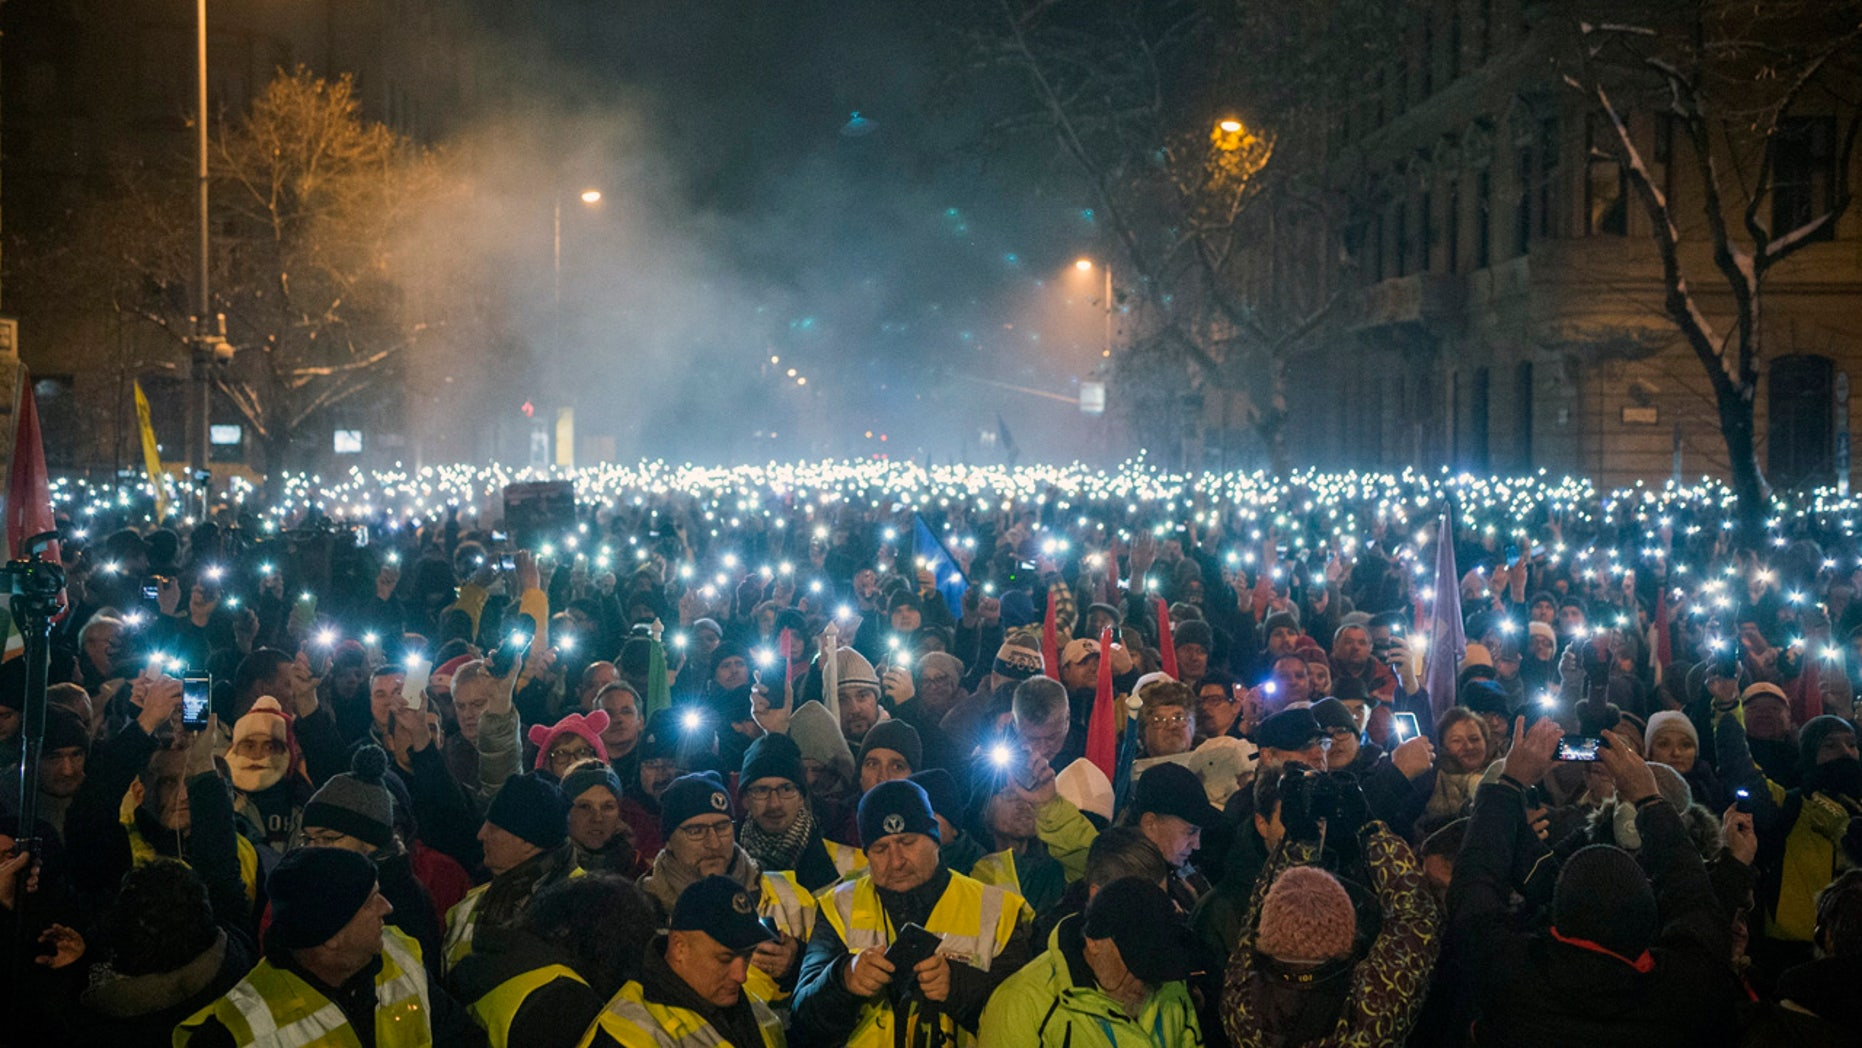 Anti-government demonstrators lighting up their phones during their protest in downtown Budapest on Sunday. (Zoltan Balogh/MTI via AP)